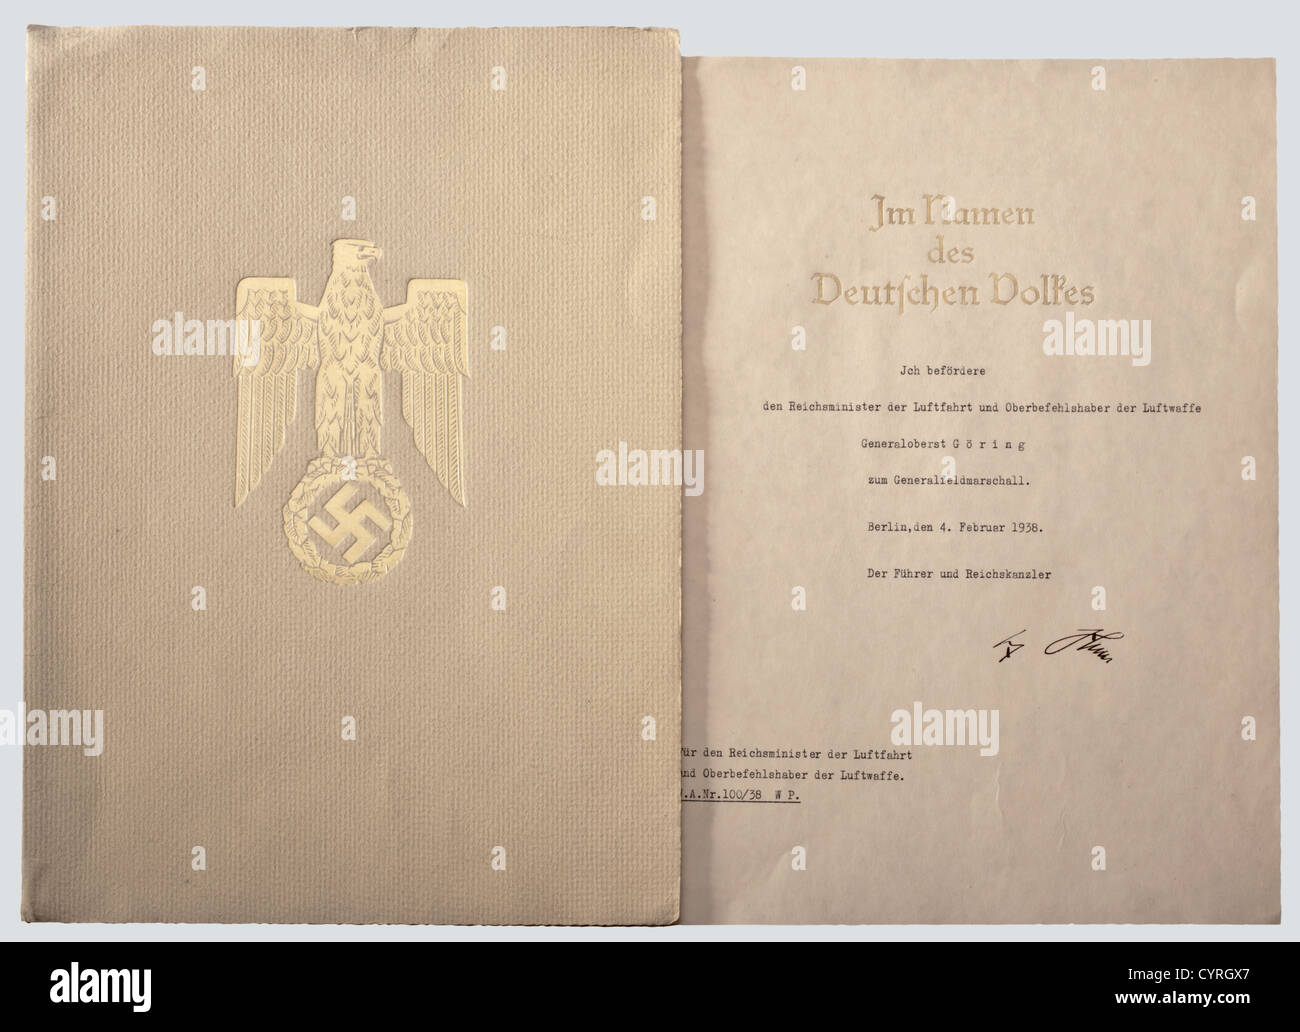 Hermann Goering Certificate Of Promotion To General Field Marshal